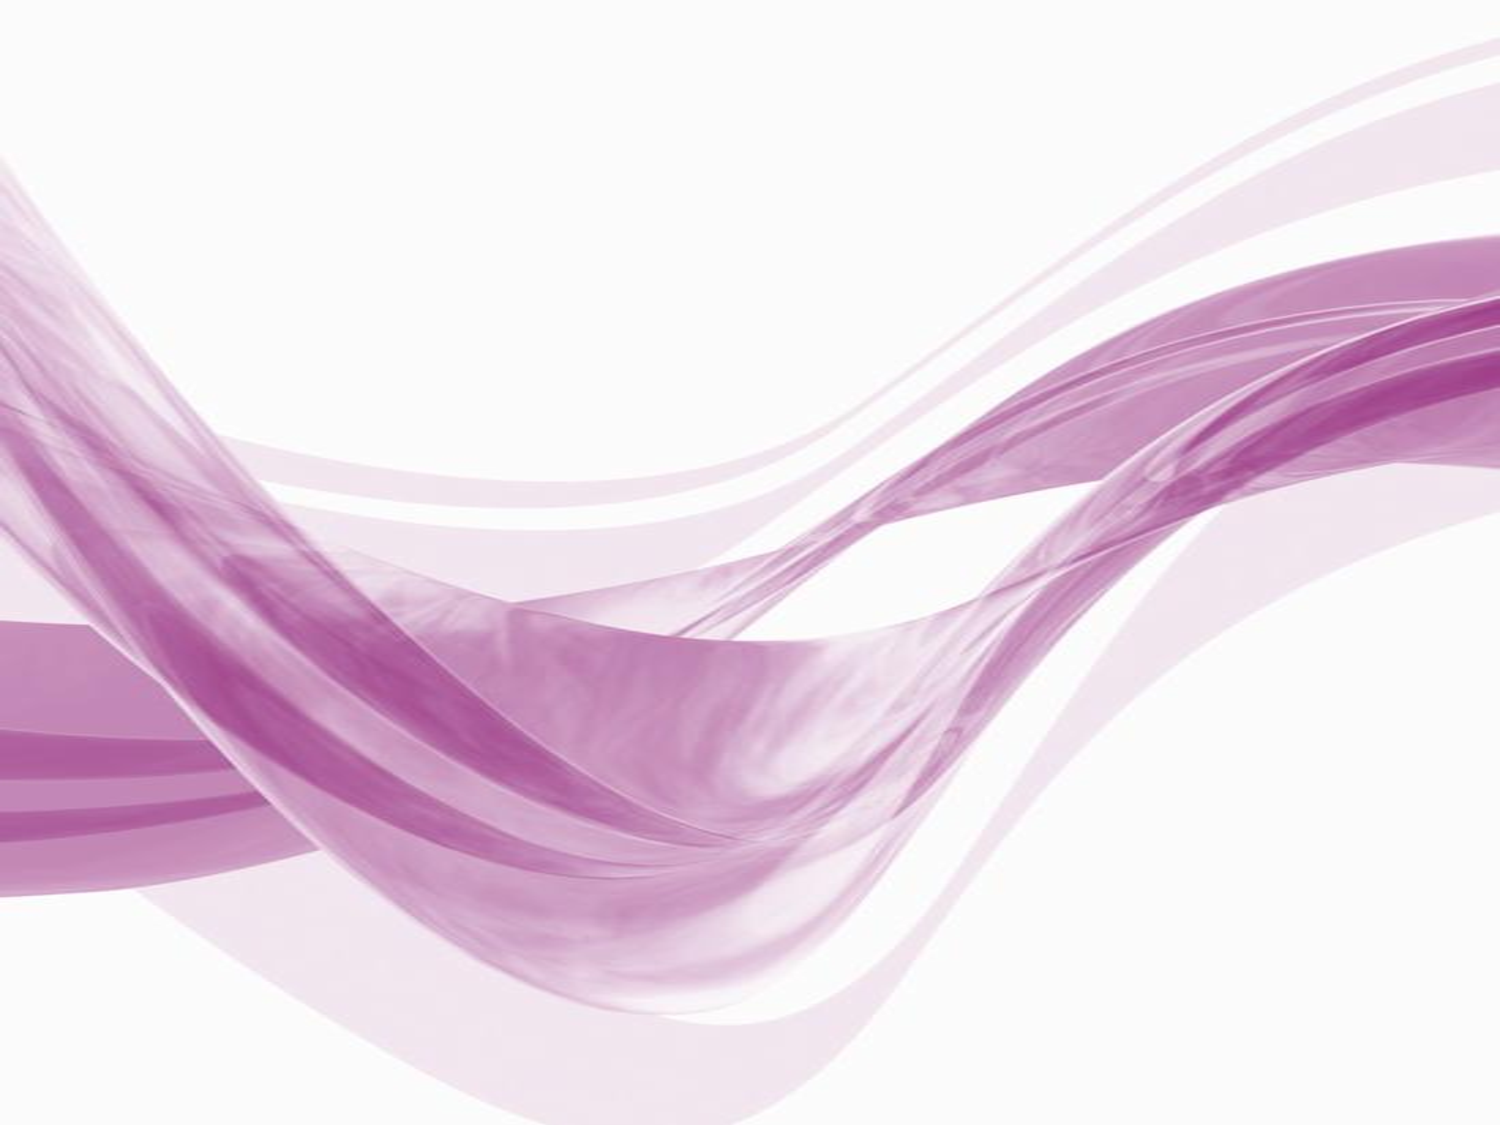 Purple Swirl Background WallpaperSafari